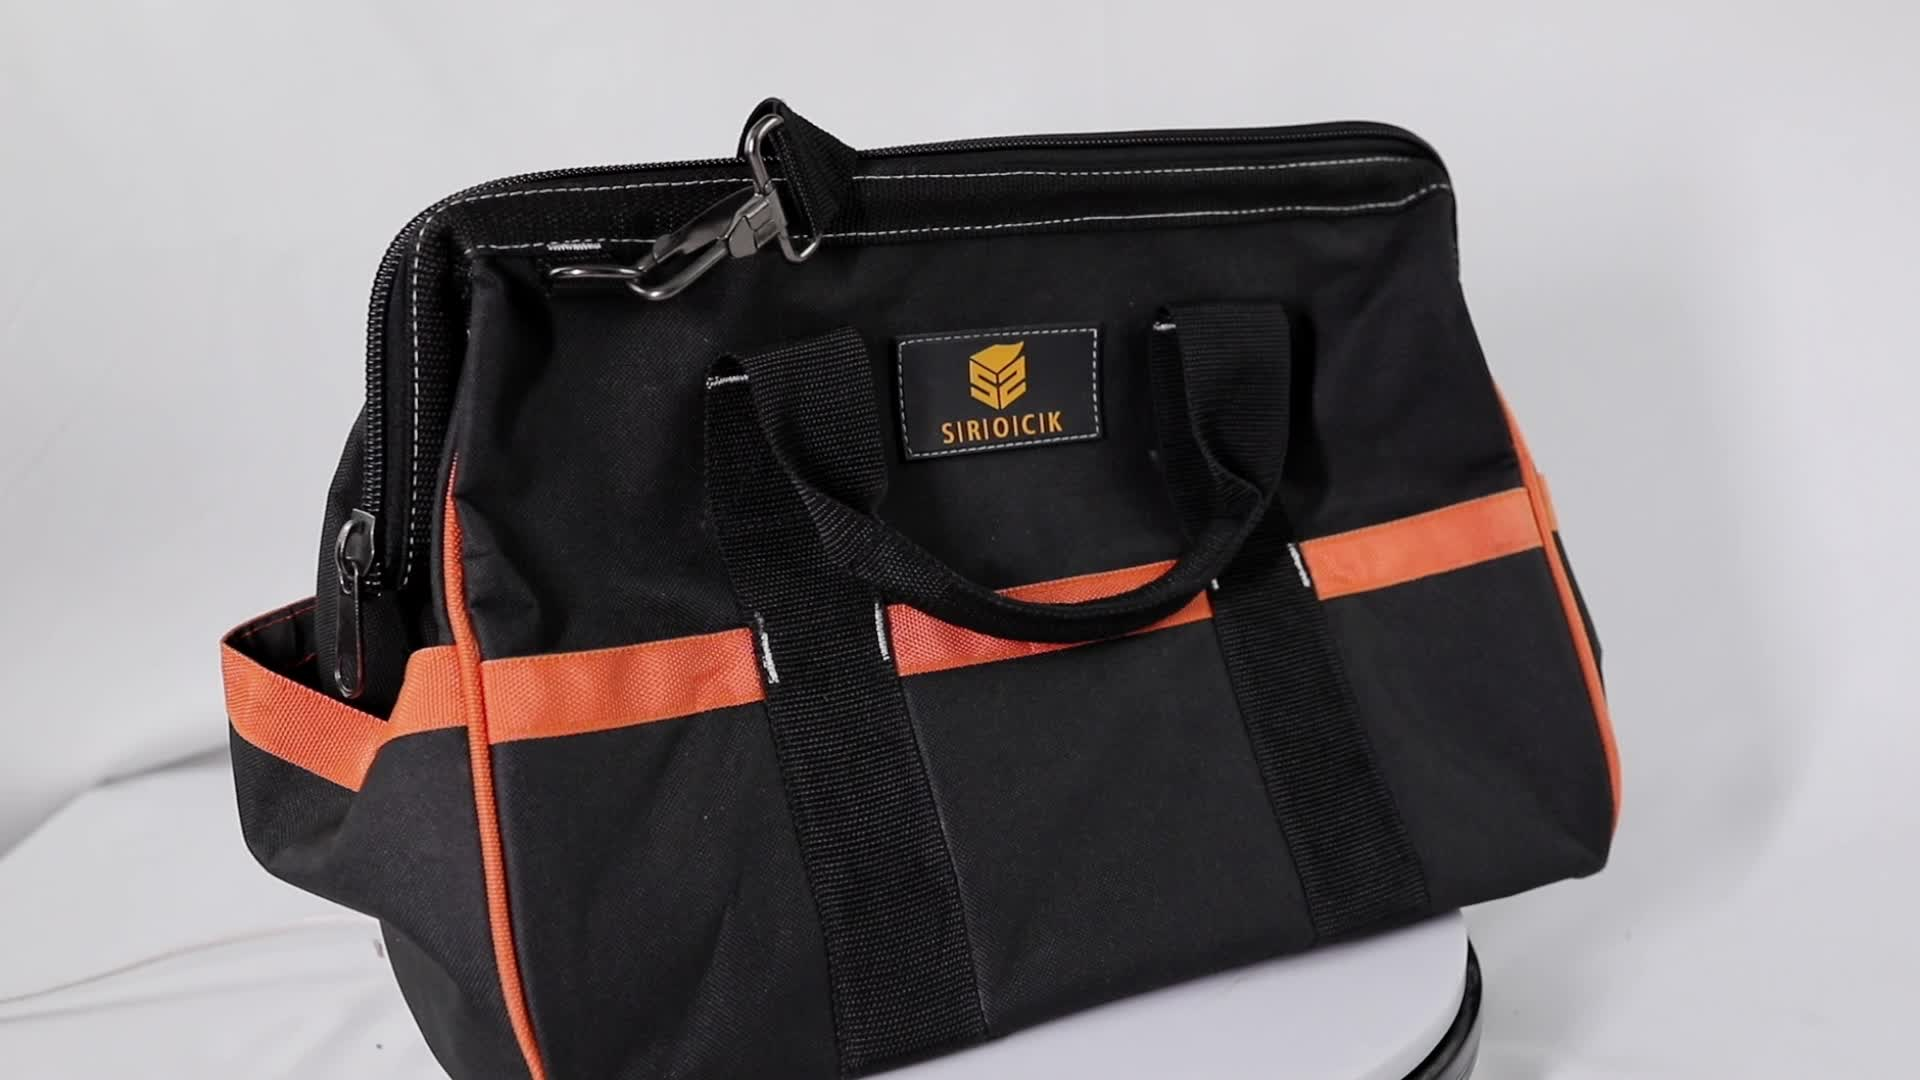 18 inch polyester tool bag with shoulder strap